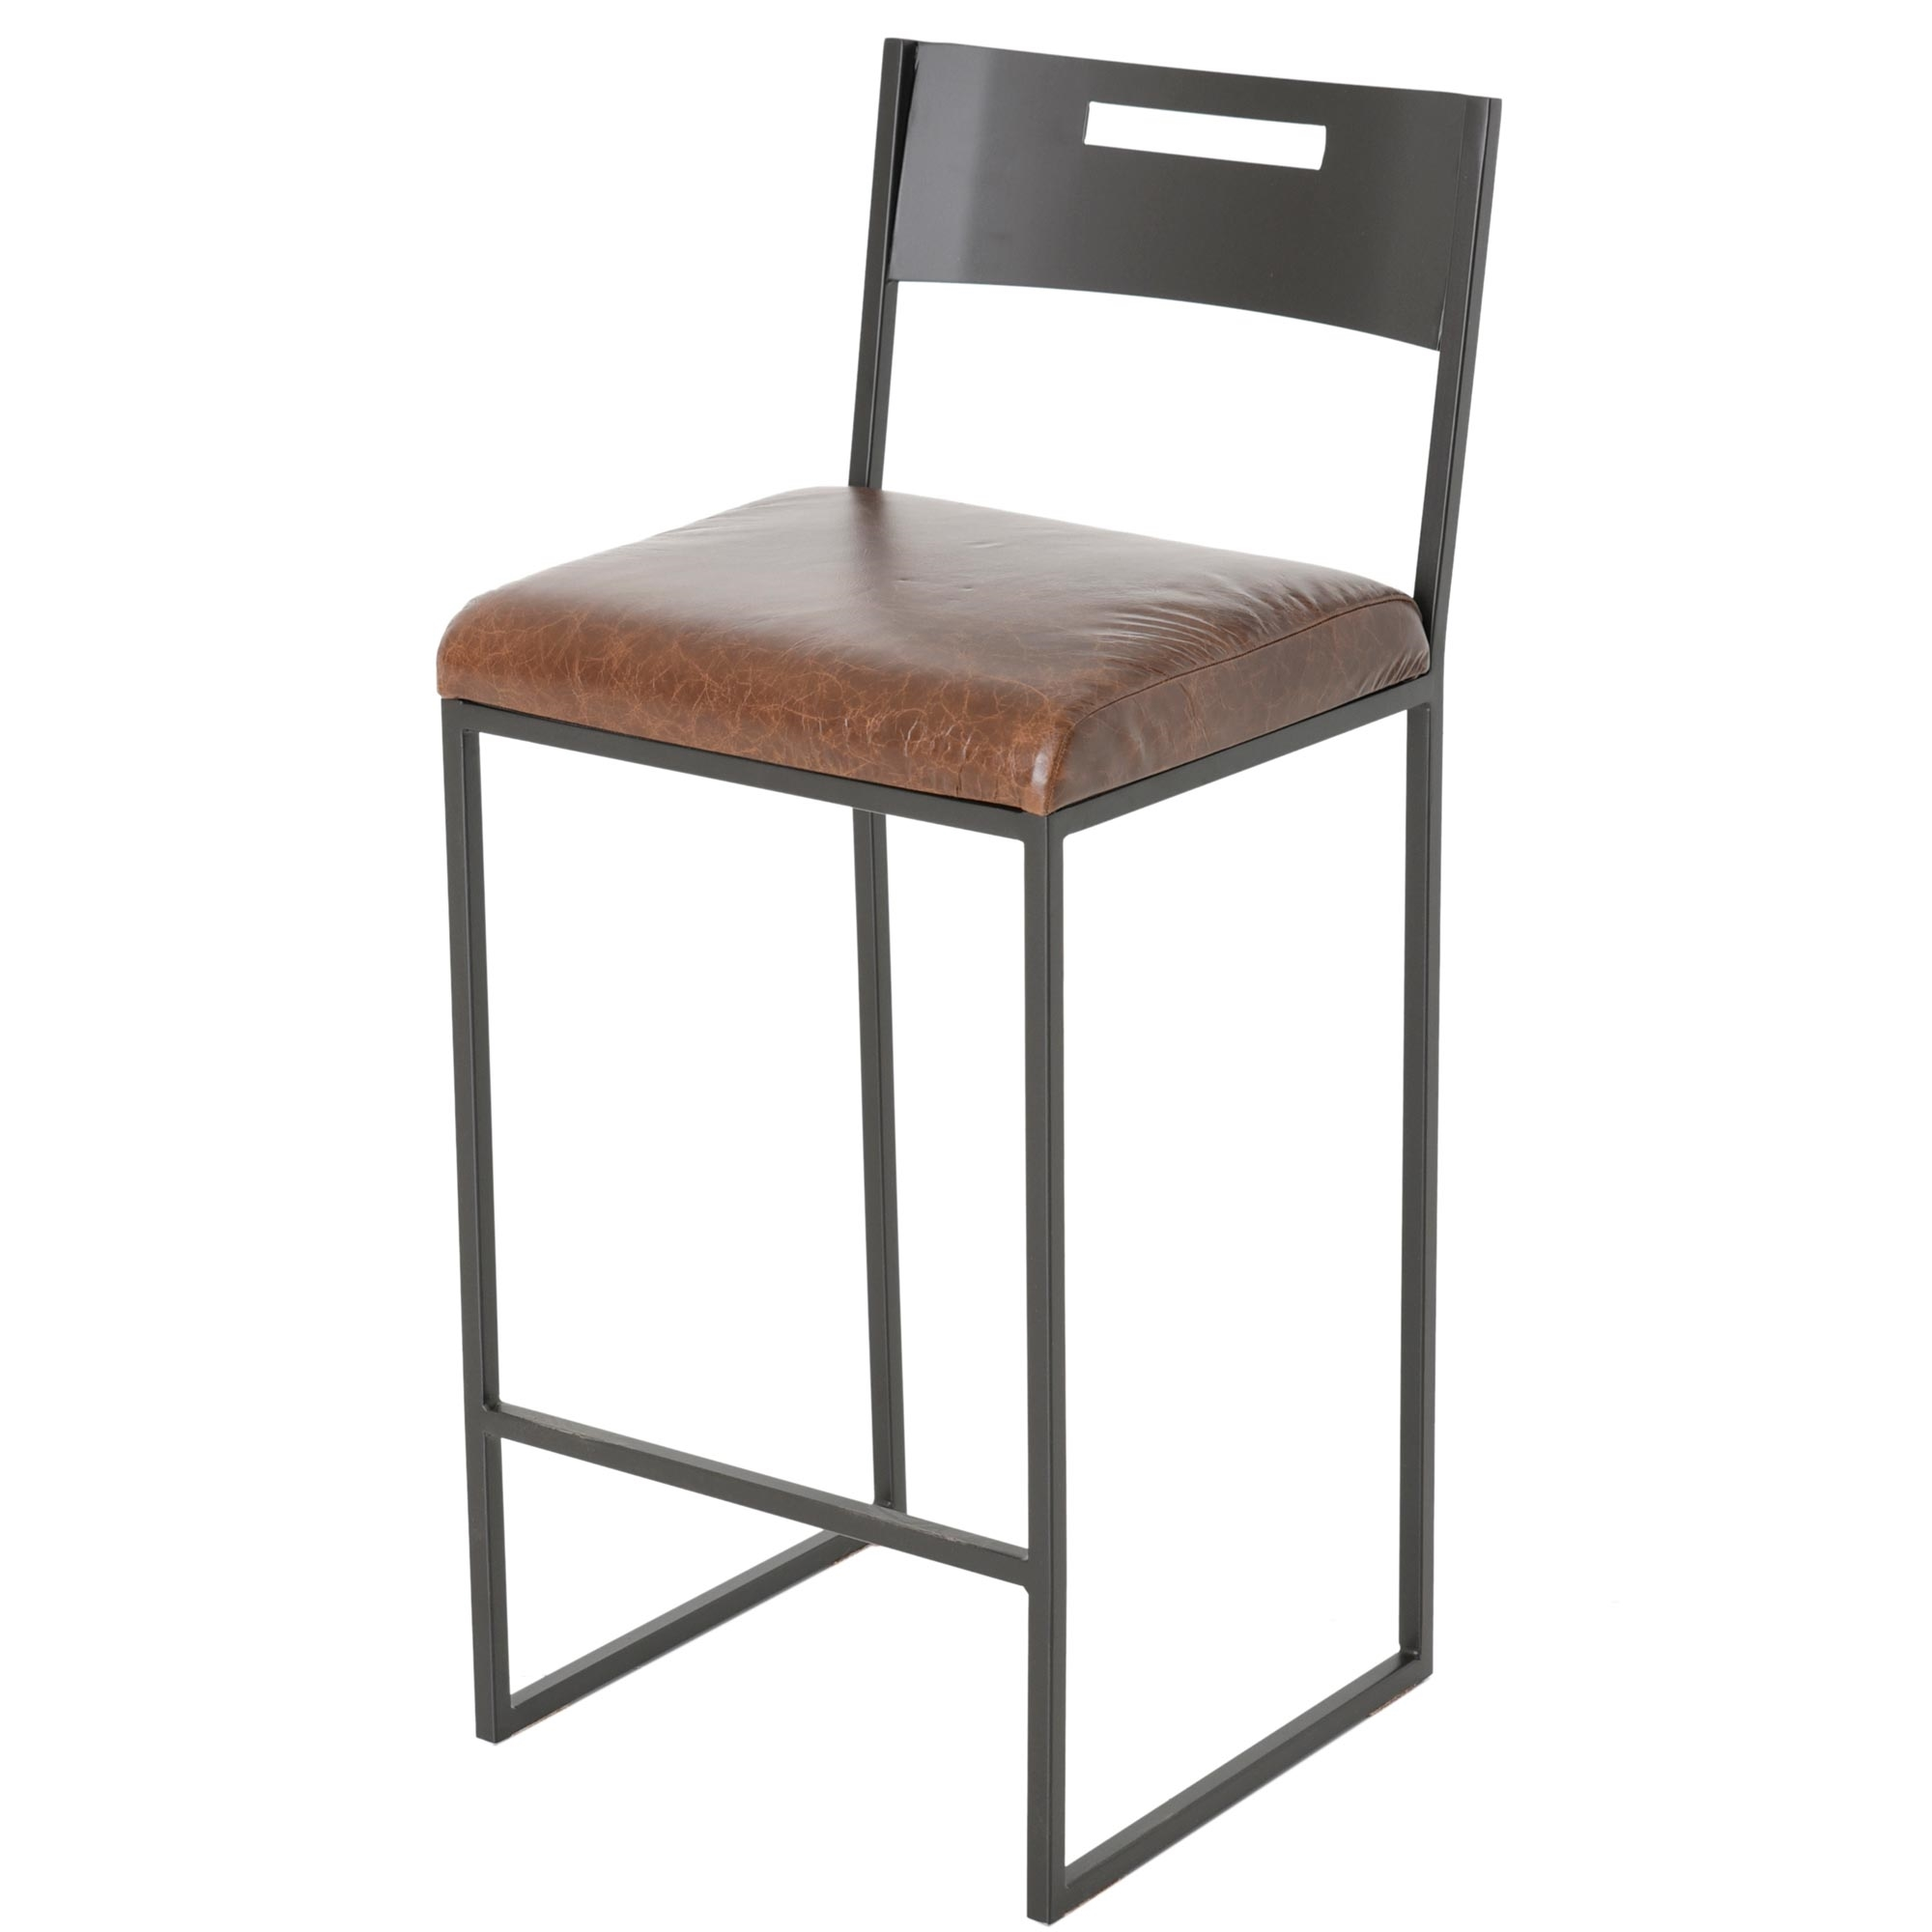 Pictured here is the Astor Counter Stool with a inch seat height available